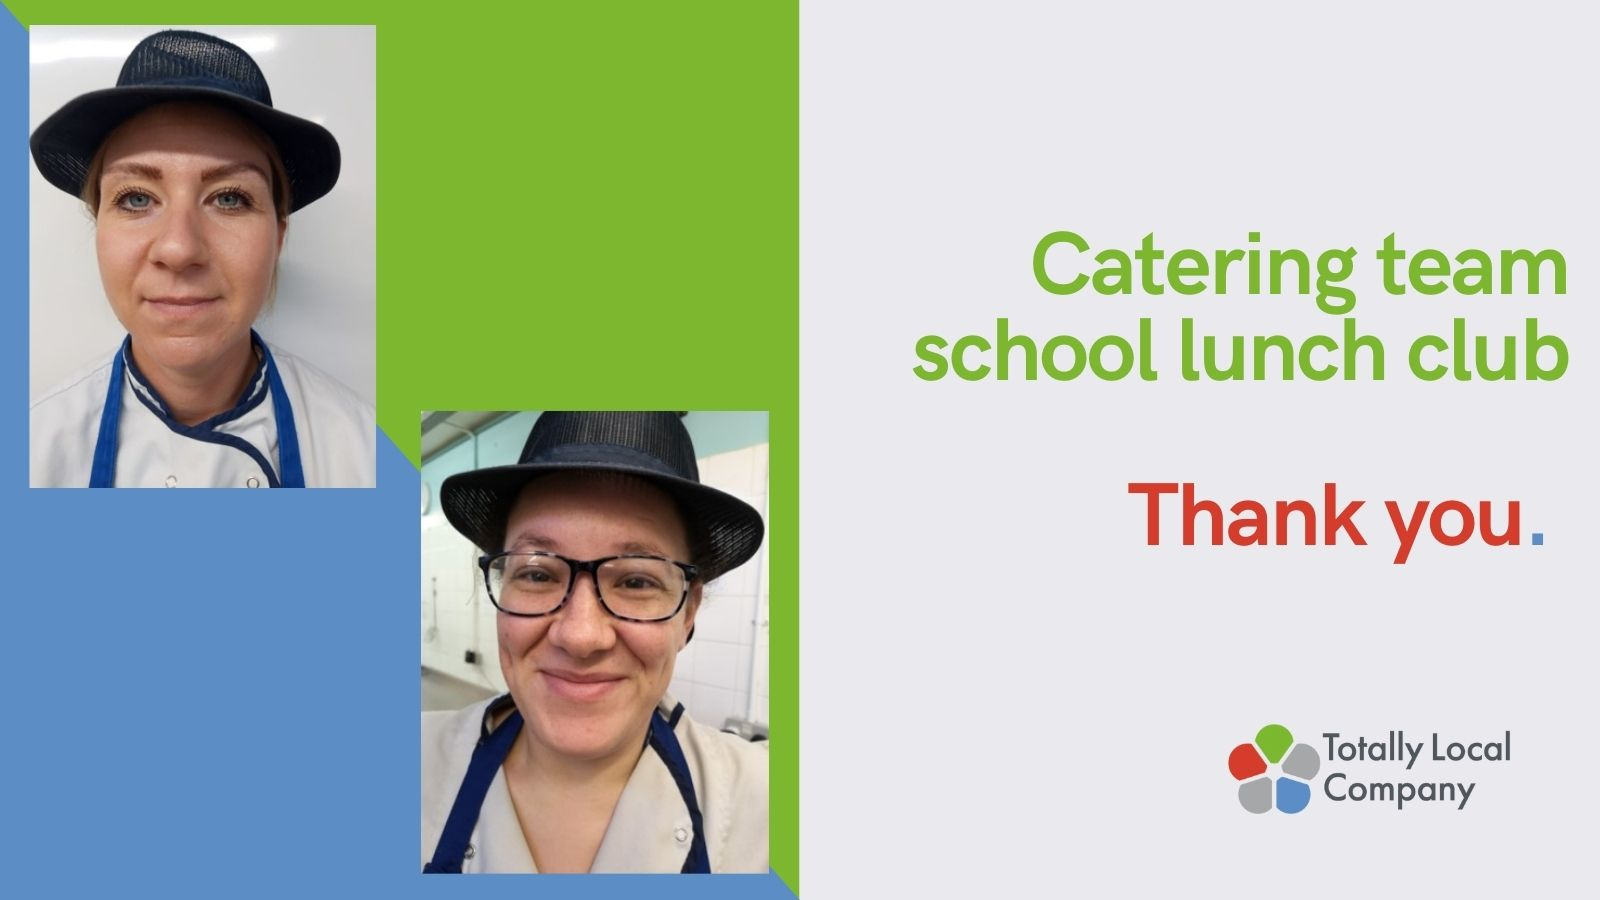 Wording - Catering team school lunch club - thank you, two photos of ladies, they are both in a white catering uniform with blue straps, and are wearing a dark hat